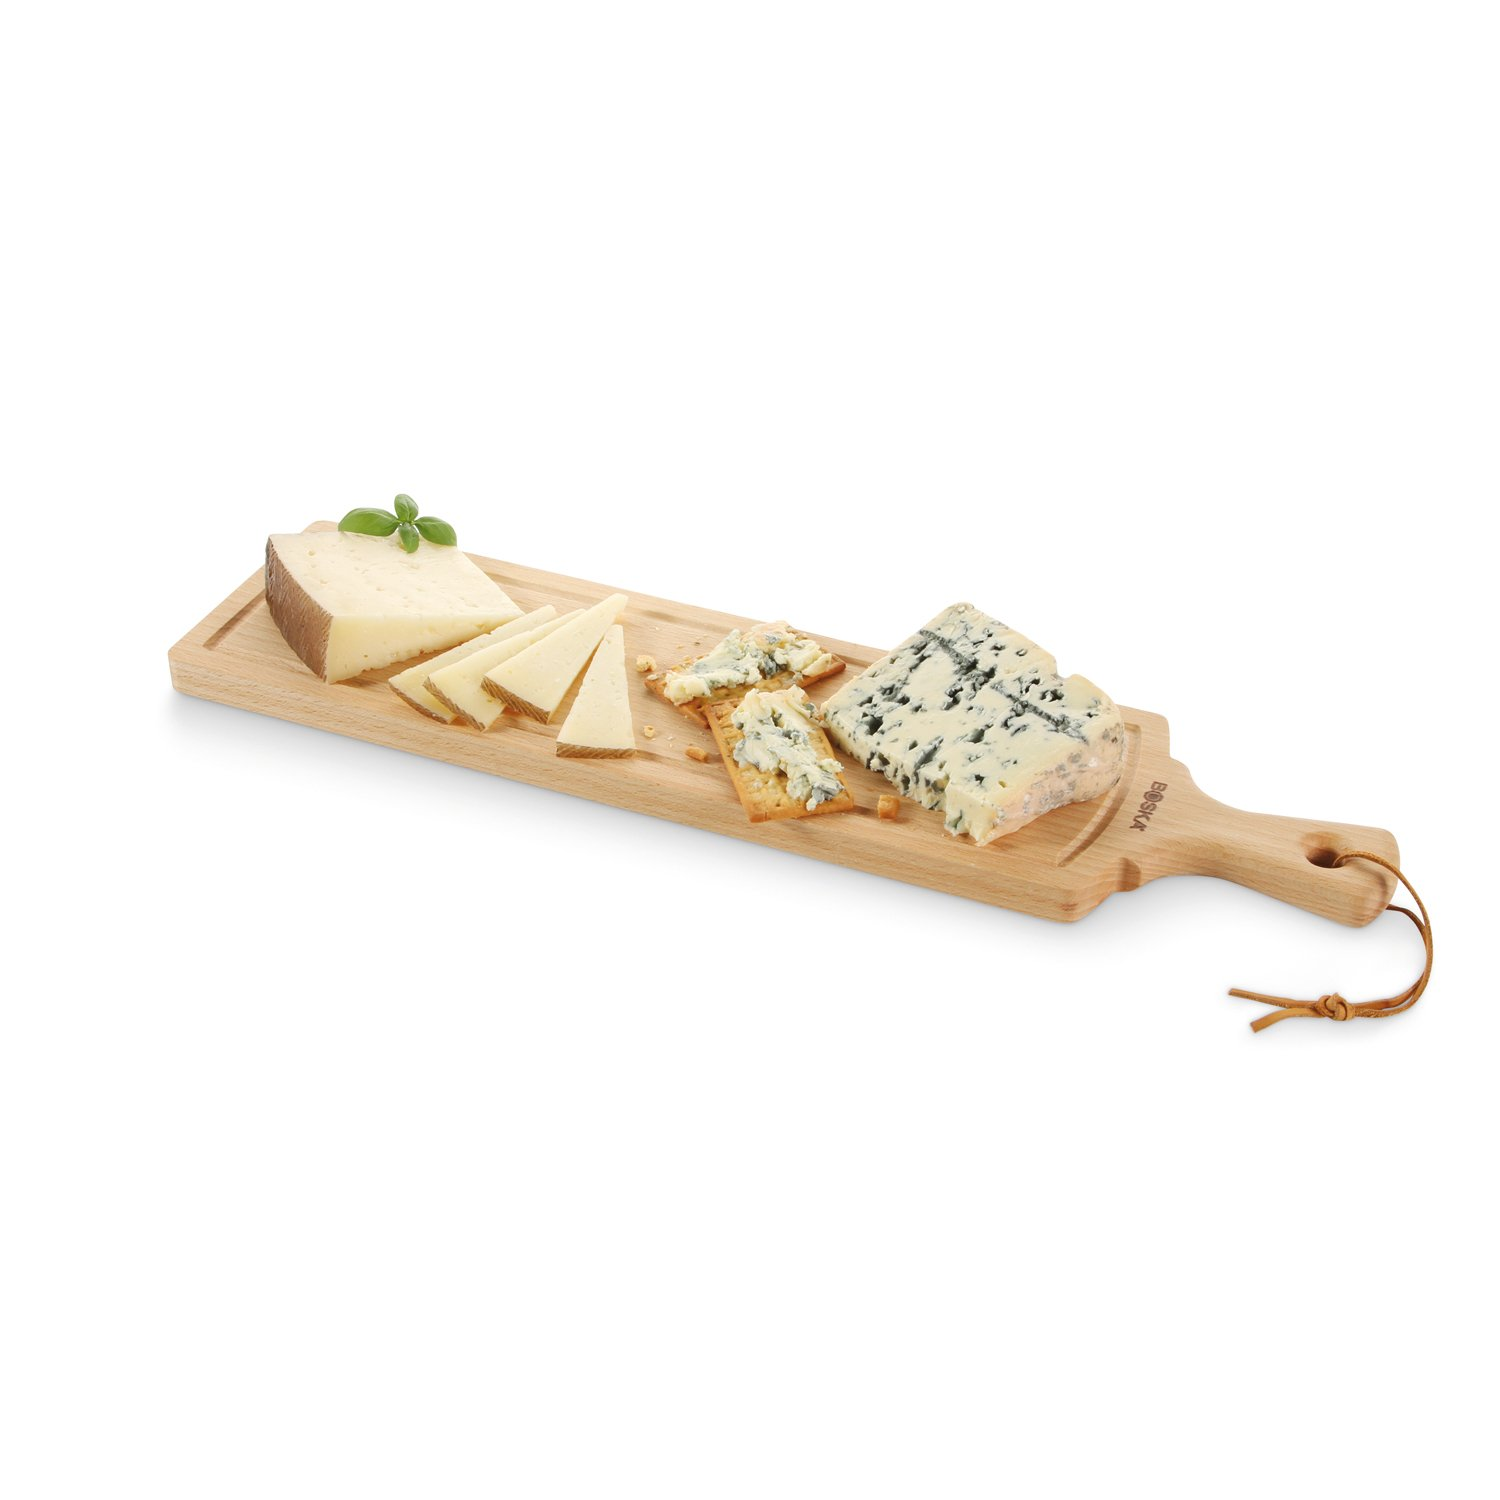 Boska Holland Beech Wood Cheese Board, Rectangle Paddle Board, 17.5'' x 4.5'', Explore Collection